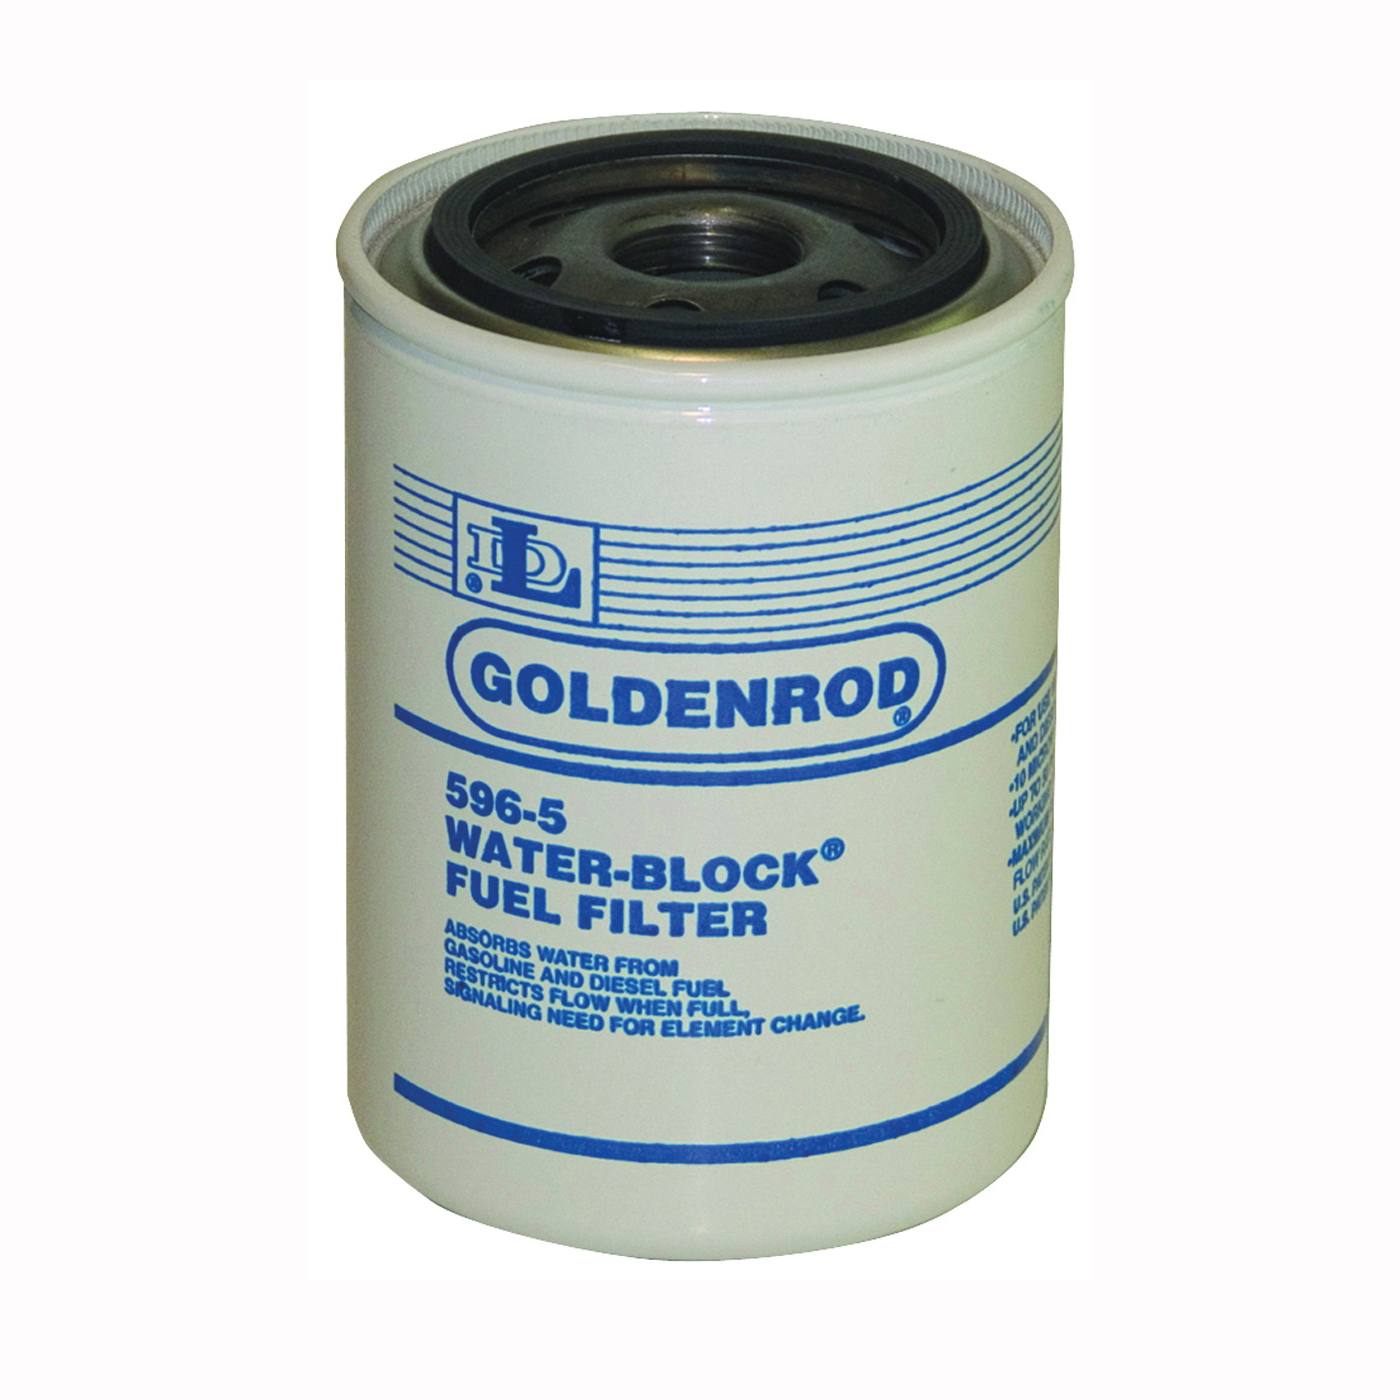 Picture of DL Goldenrod 596-5 Fuel Tank Filter, 12 gpm, For: 596 Model 10 micron Fuel Filter